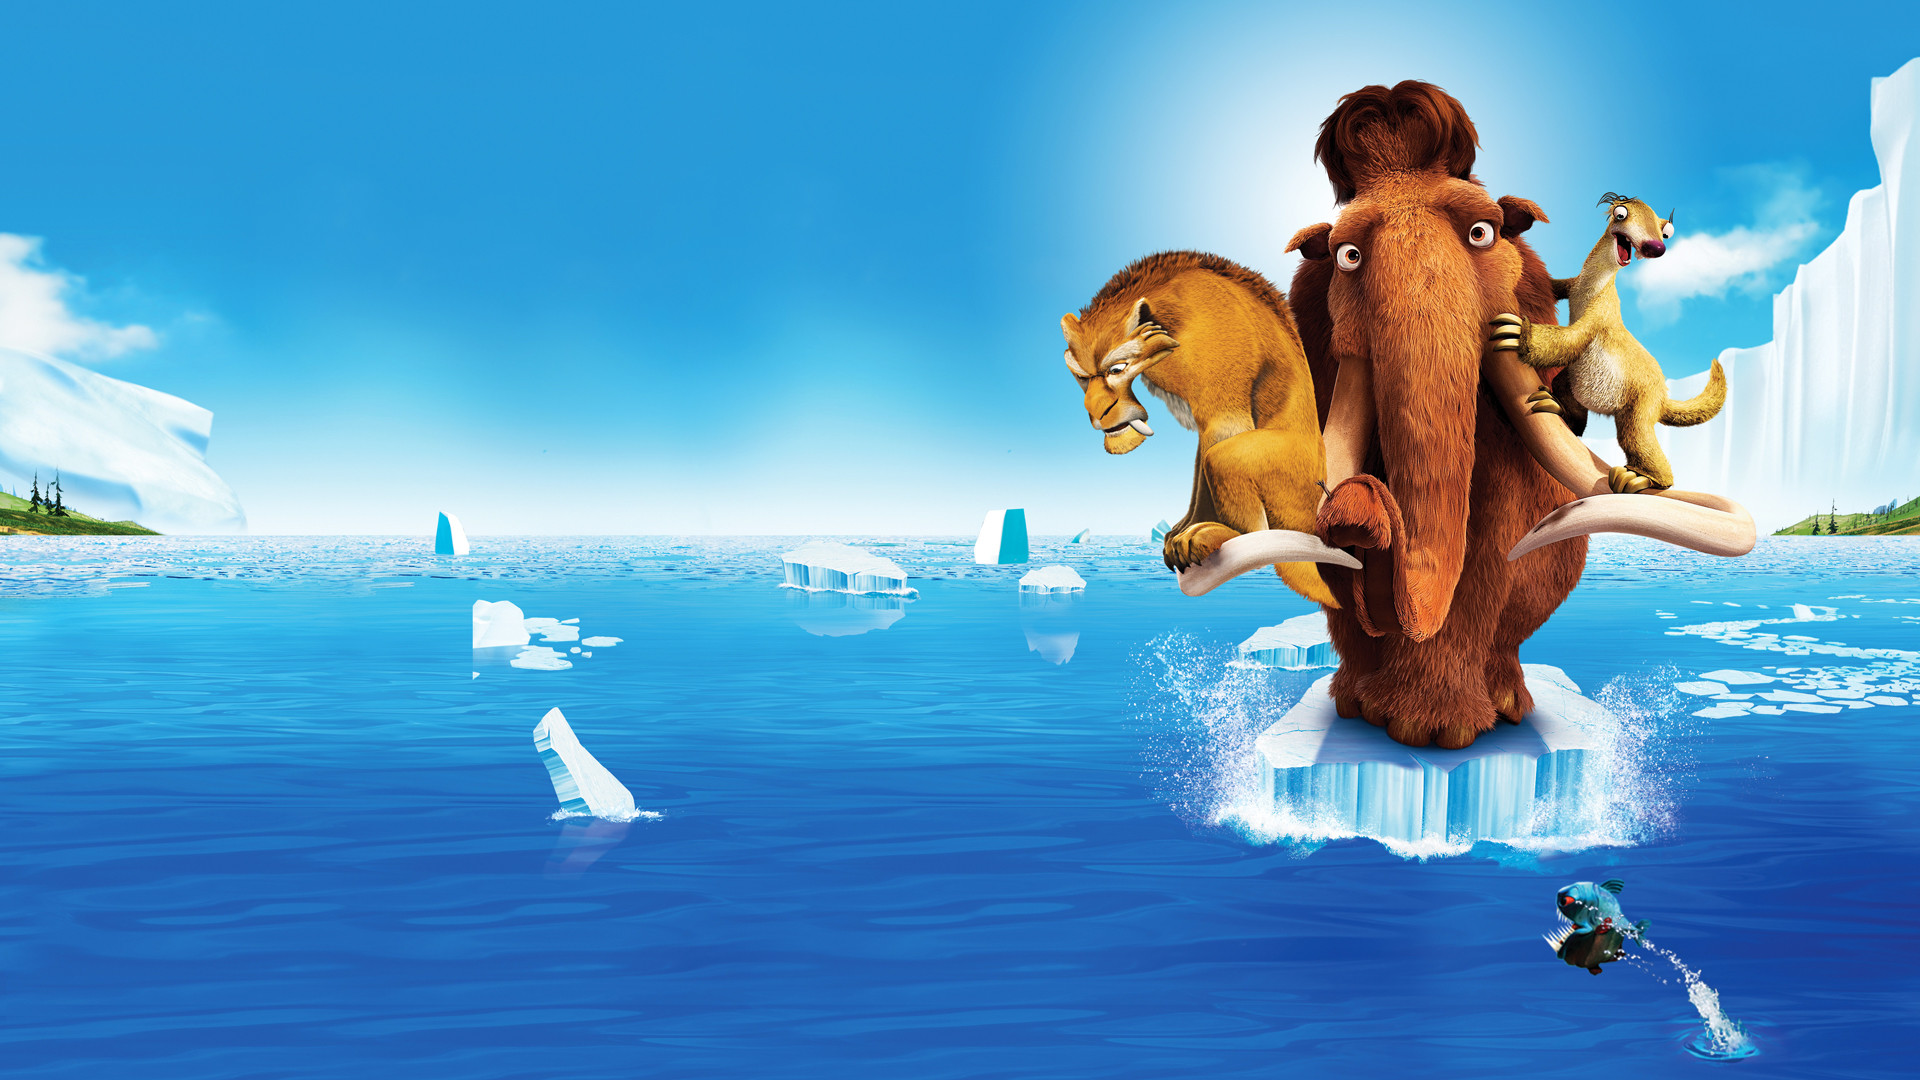 1920x1080 ice-age-hd-wallpapers-8